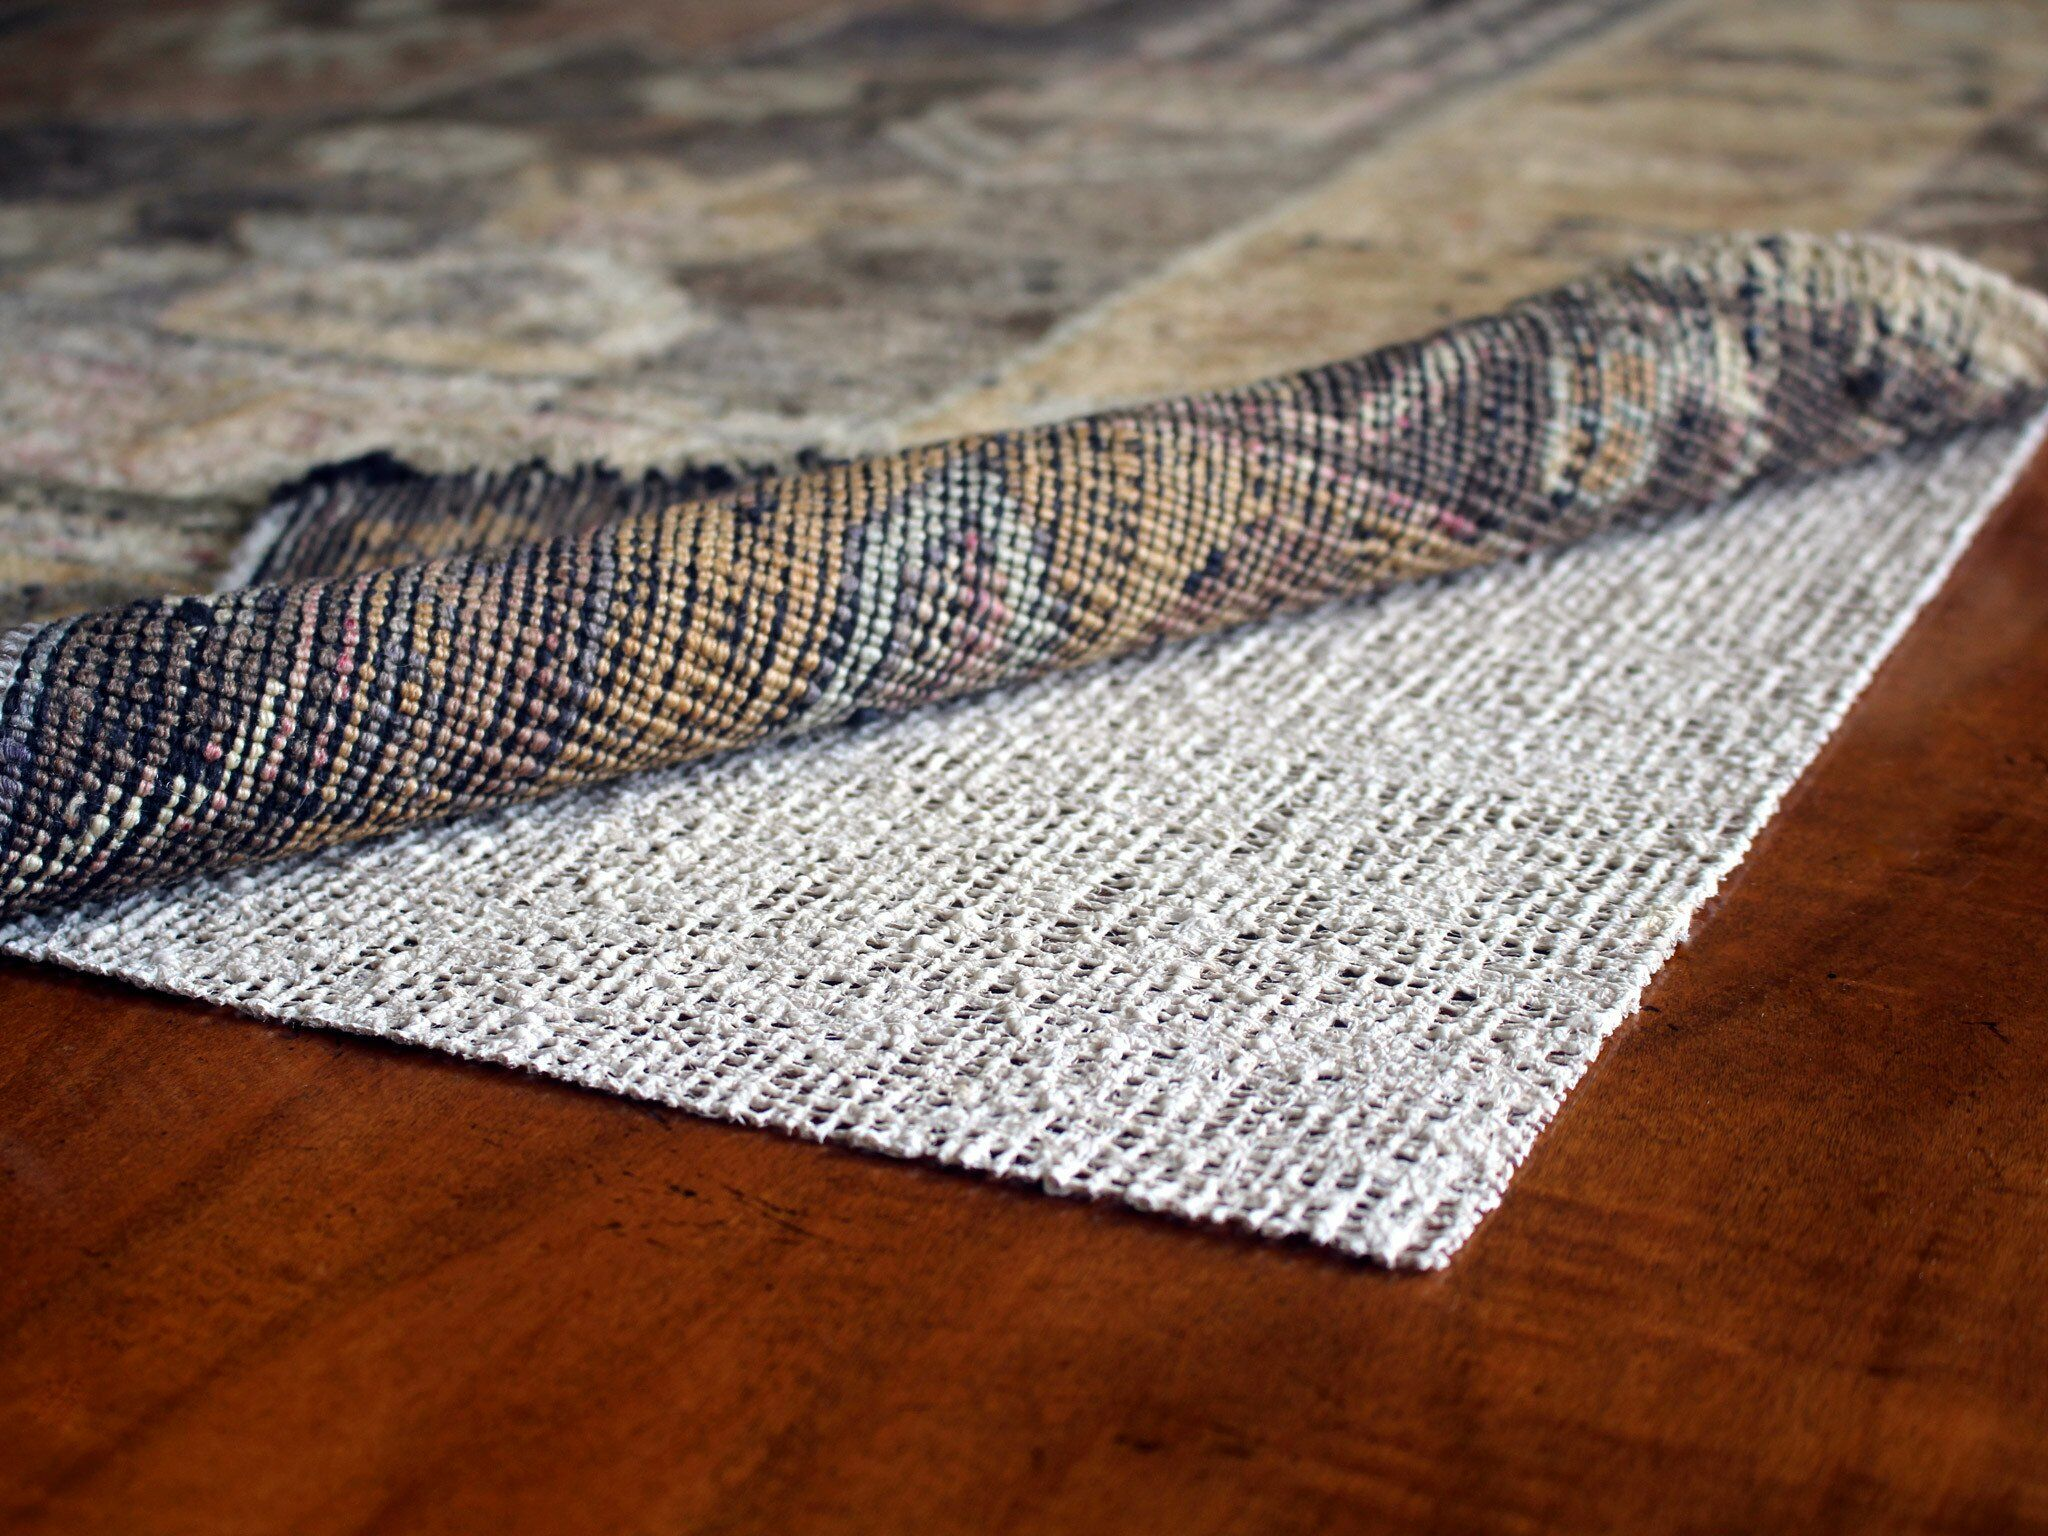 Nature's Grip Non-Skid Jute and Natural Rubber Eco Friendly Rug Pad Rug Pad Size: Rectangle 4' x 6'